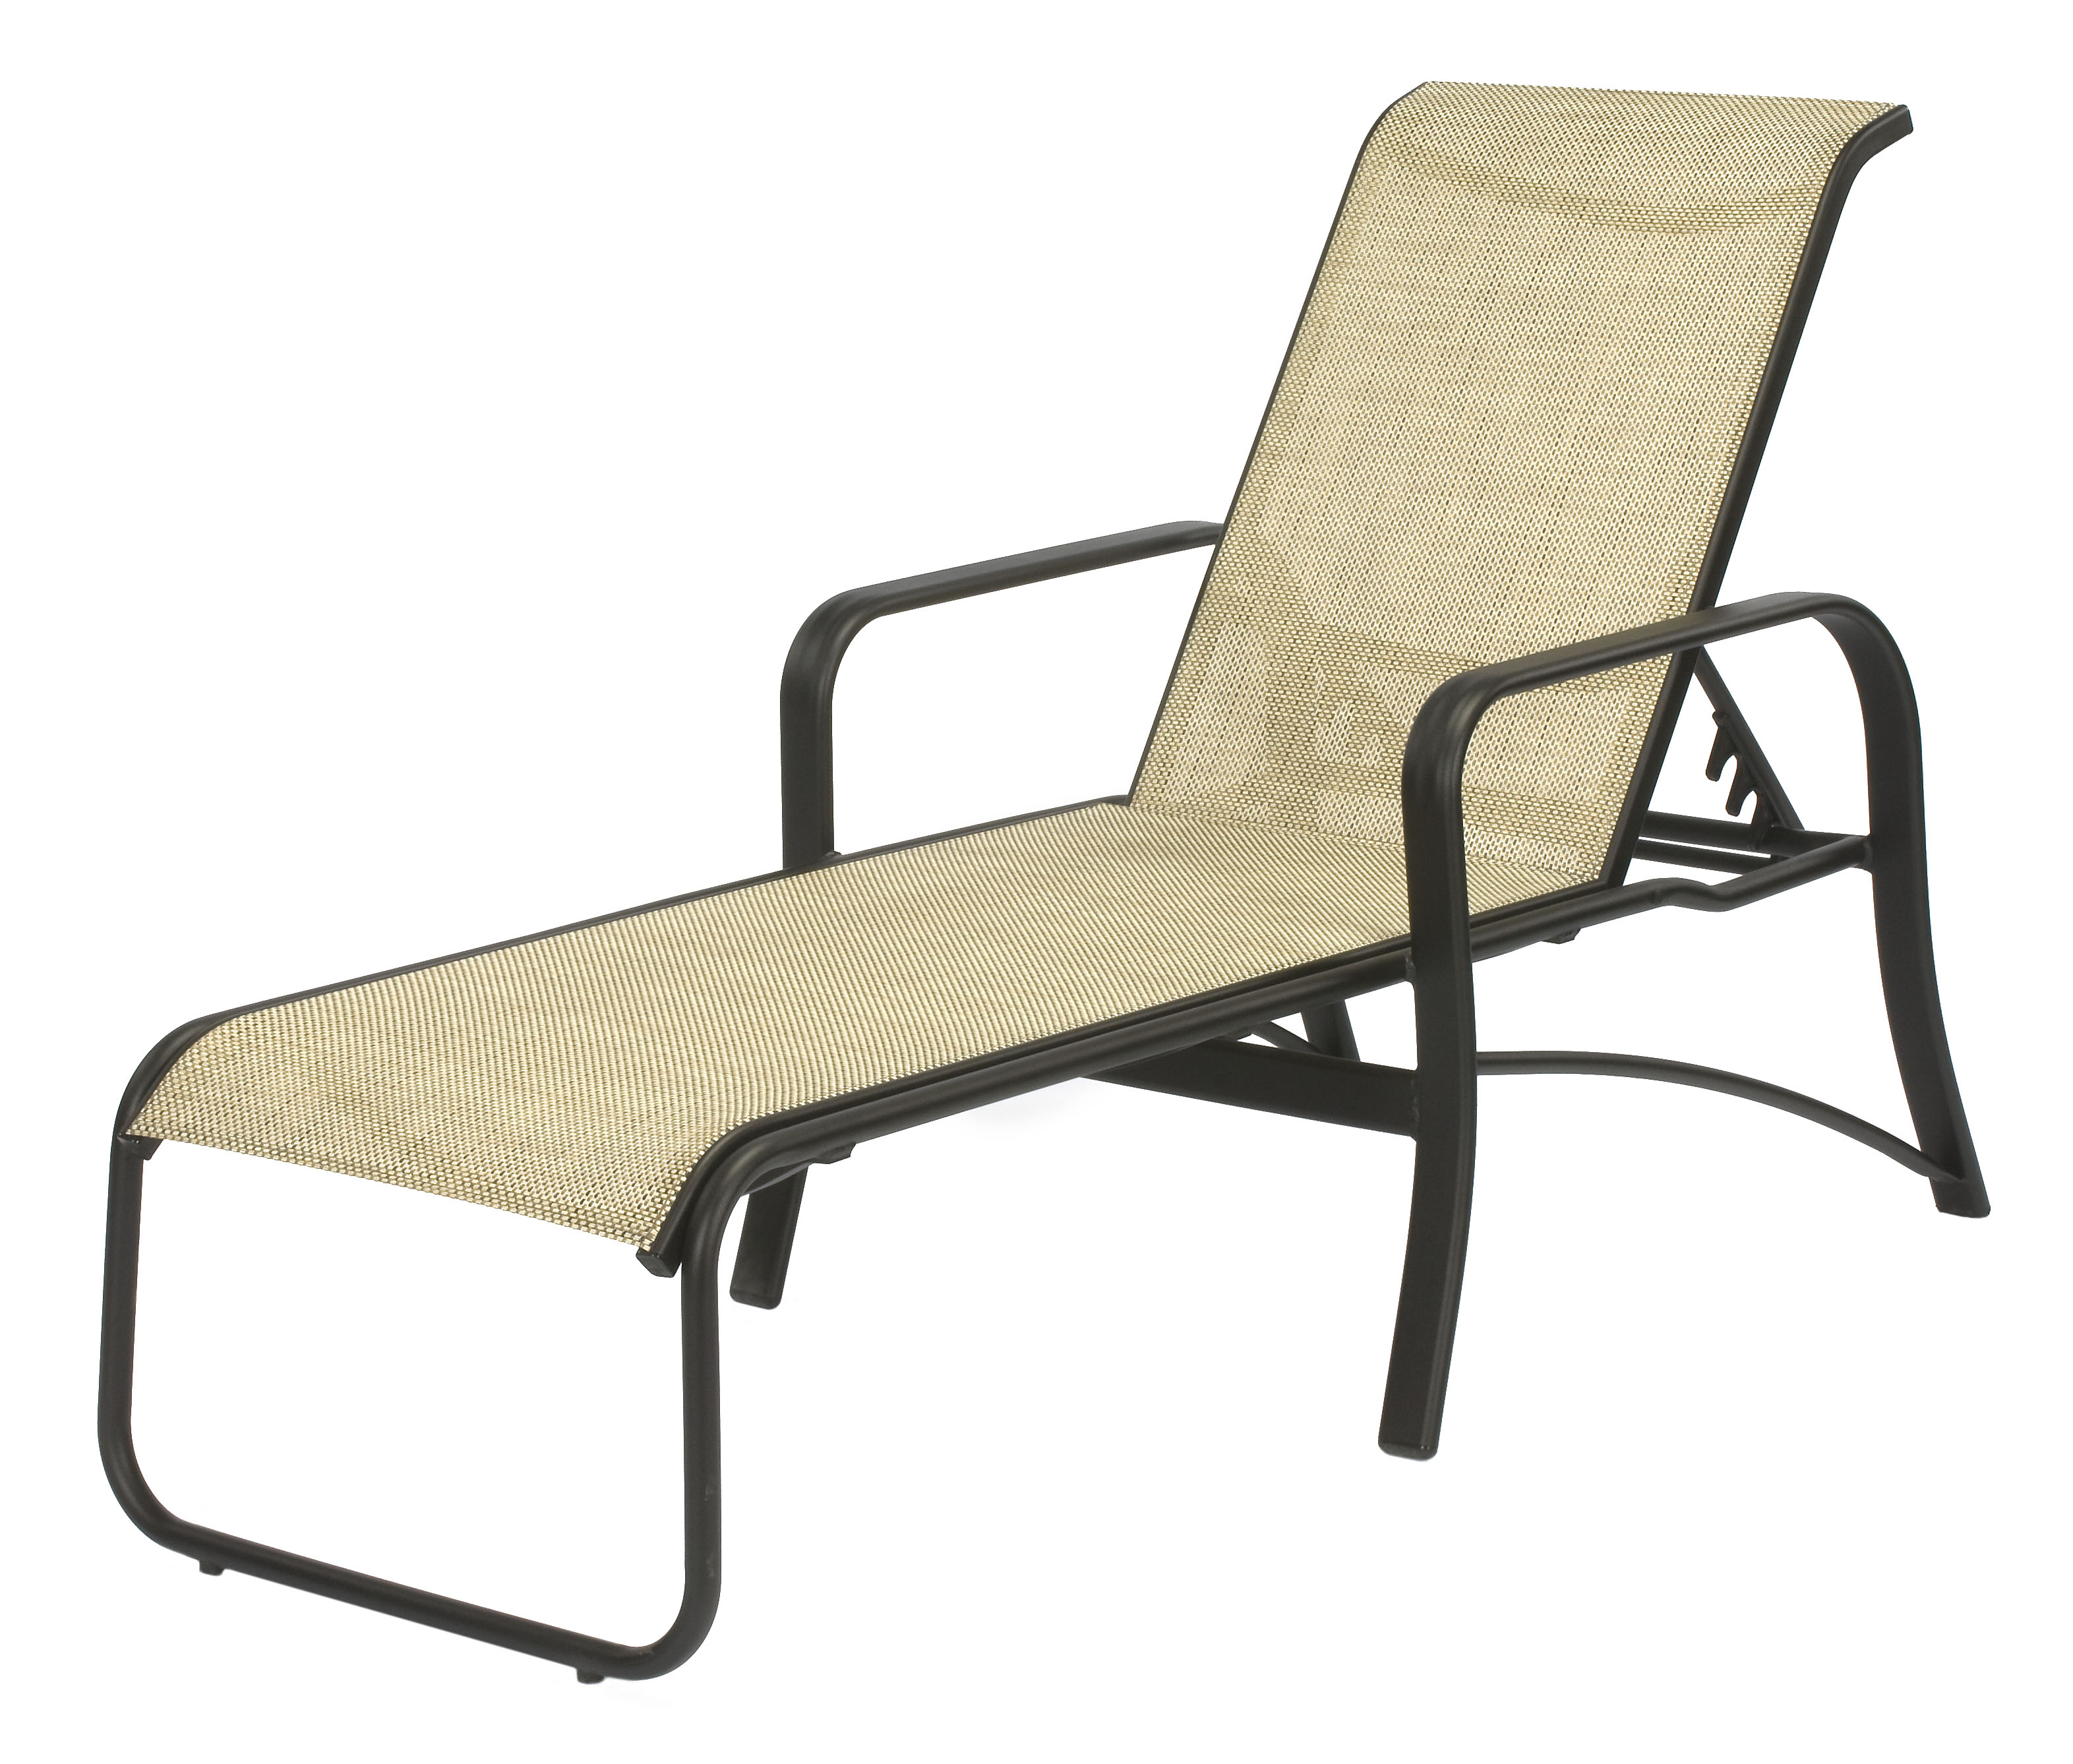 Pool Chaise Lounge Chairs 16 In Seat Montego Bay Aluminum Sling Patio Chaise Lounge Chair